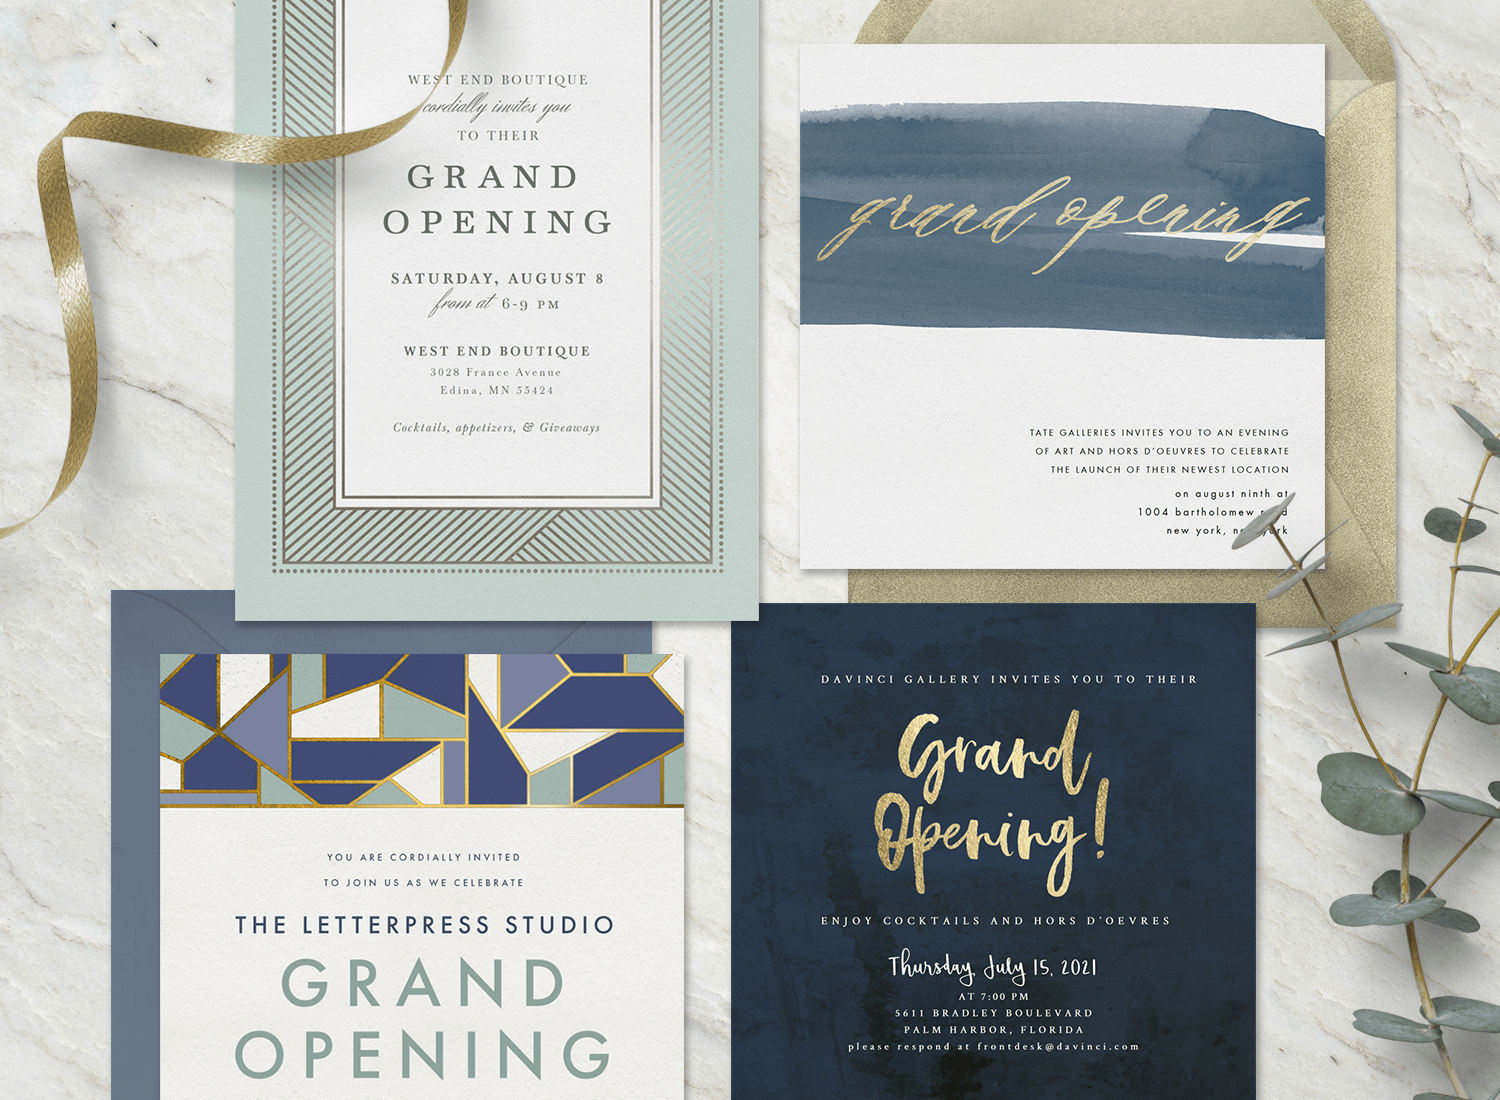 grand opening invitation: Elegant grand opening invitations on a marble surface